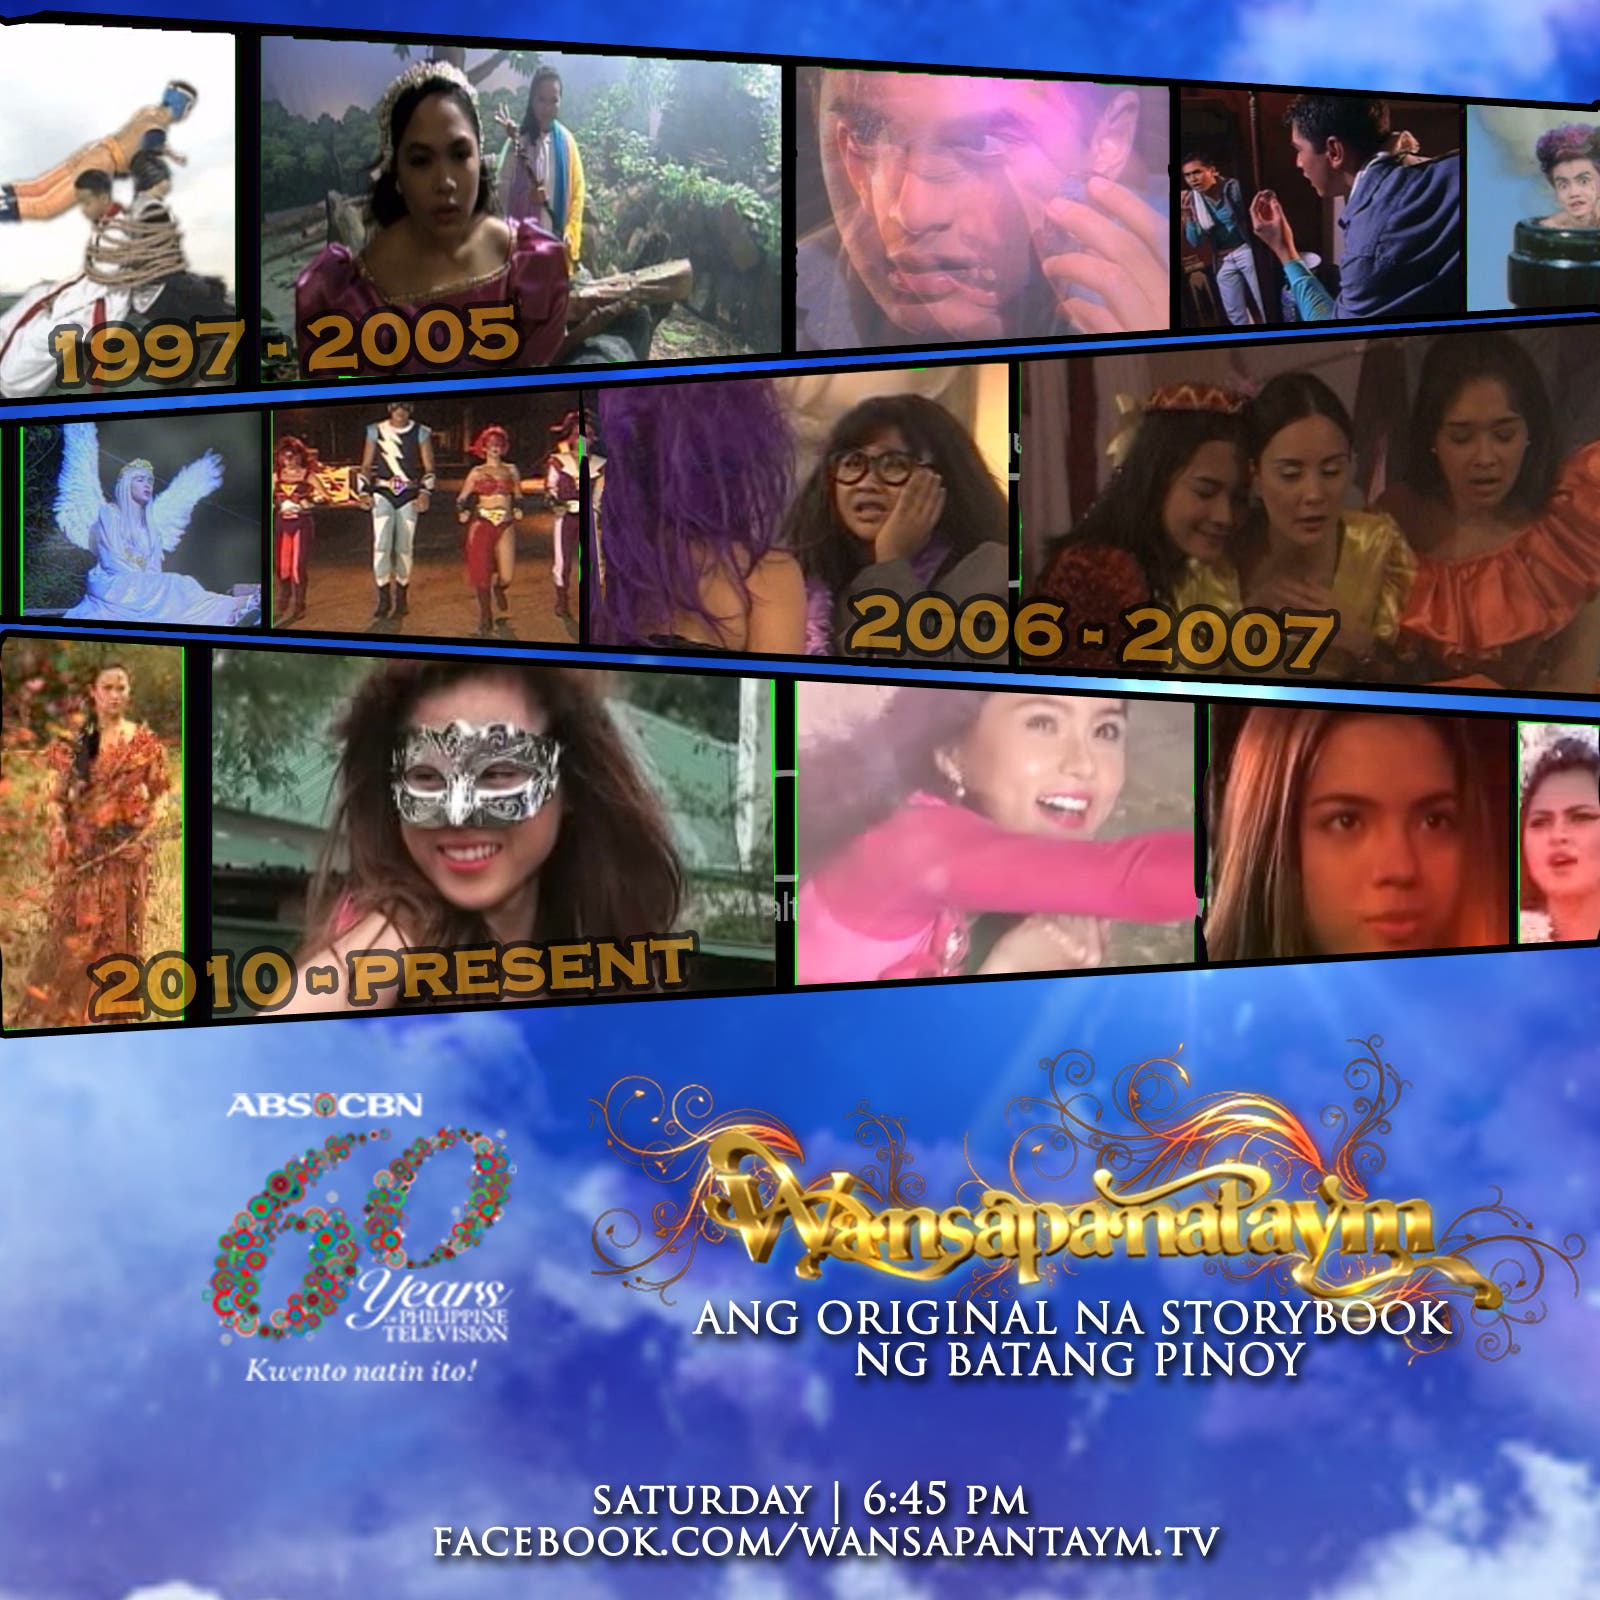 Wansapanataym remains as the no. 1 story book of Pinoy kids